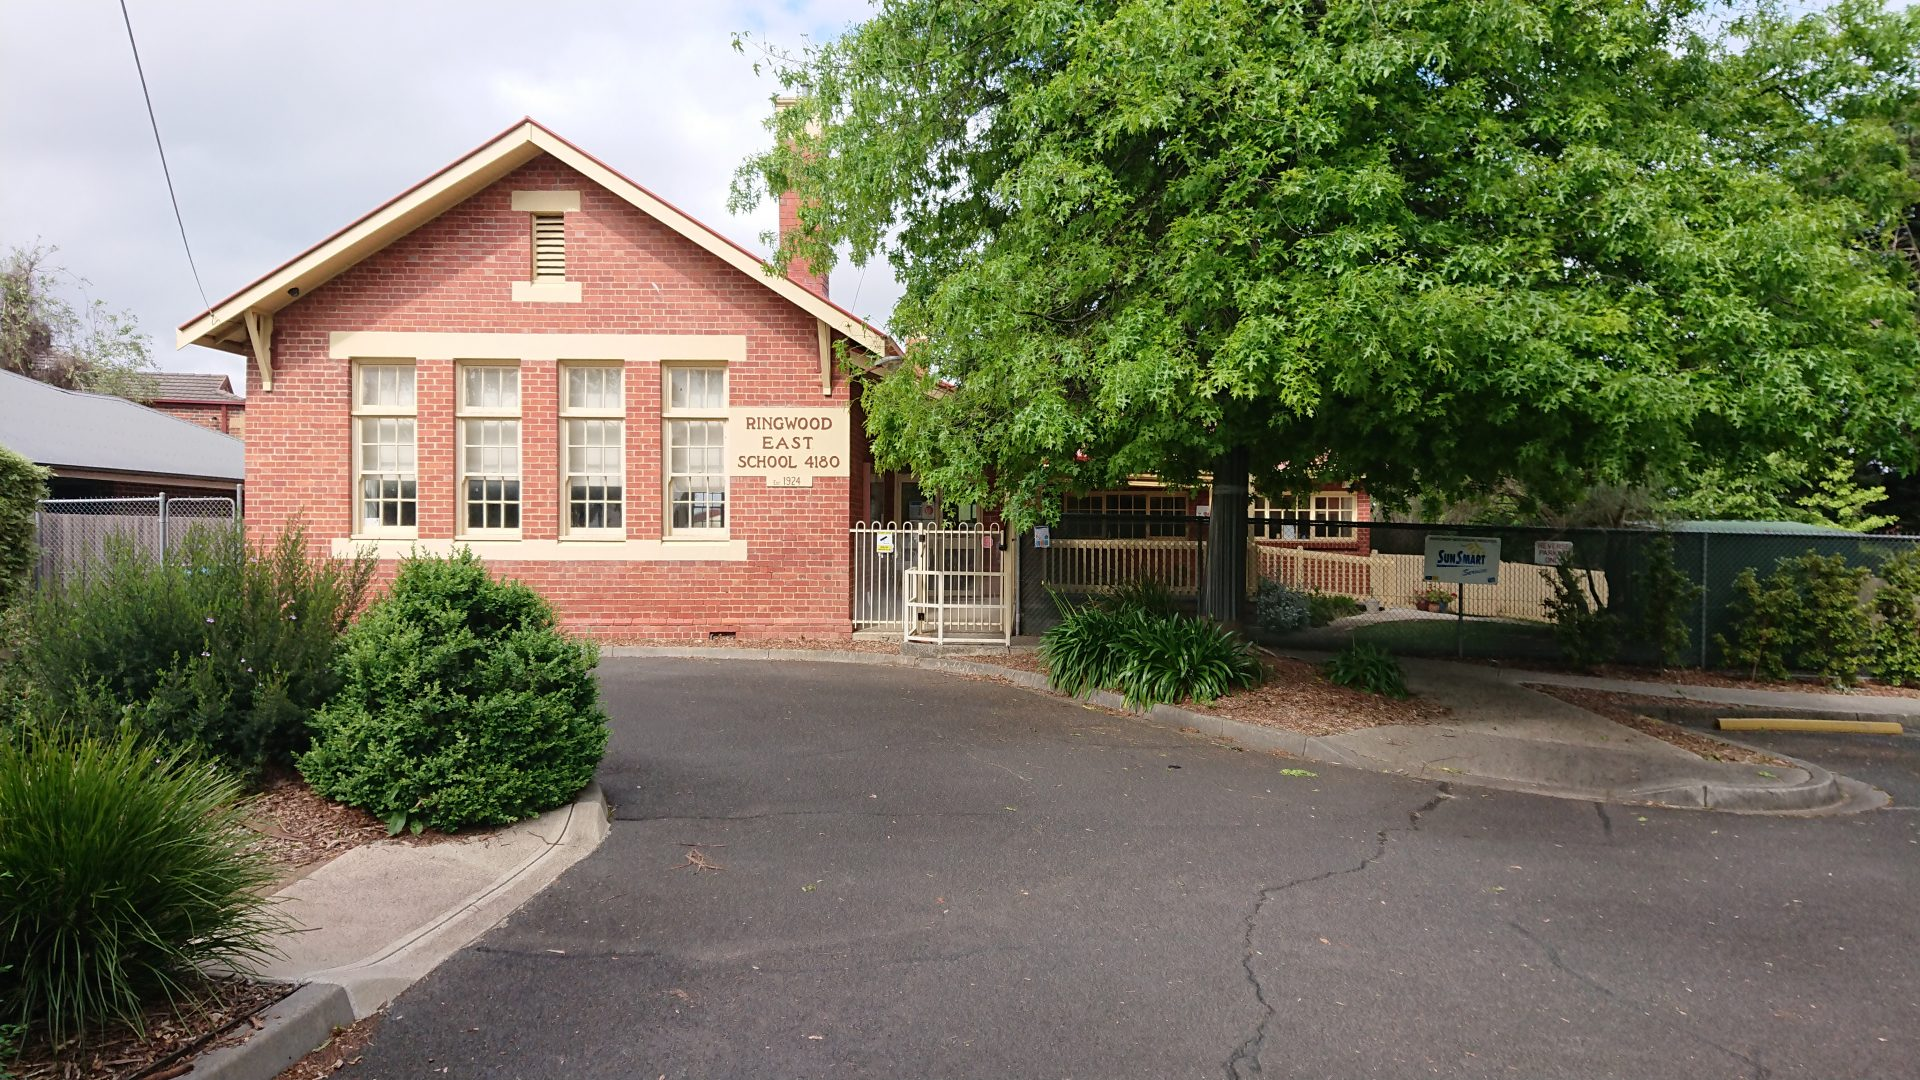 Ringwood East Primary School now